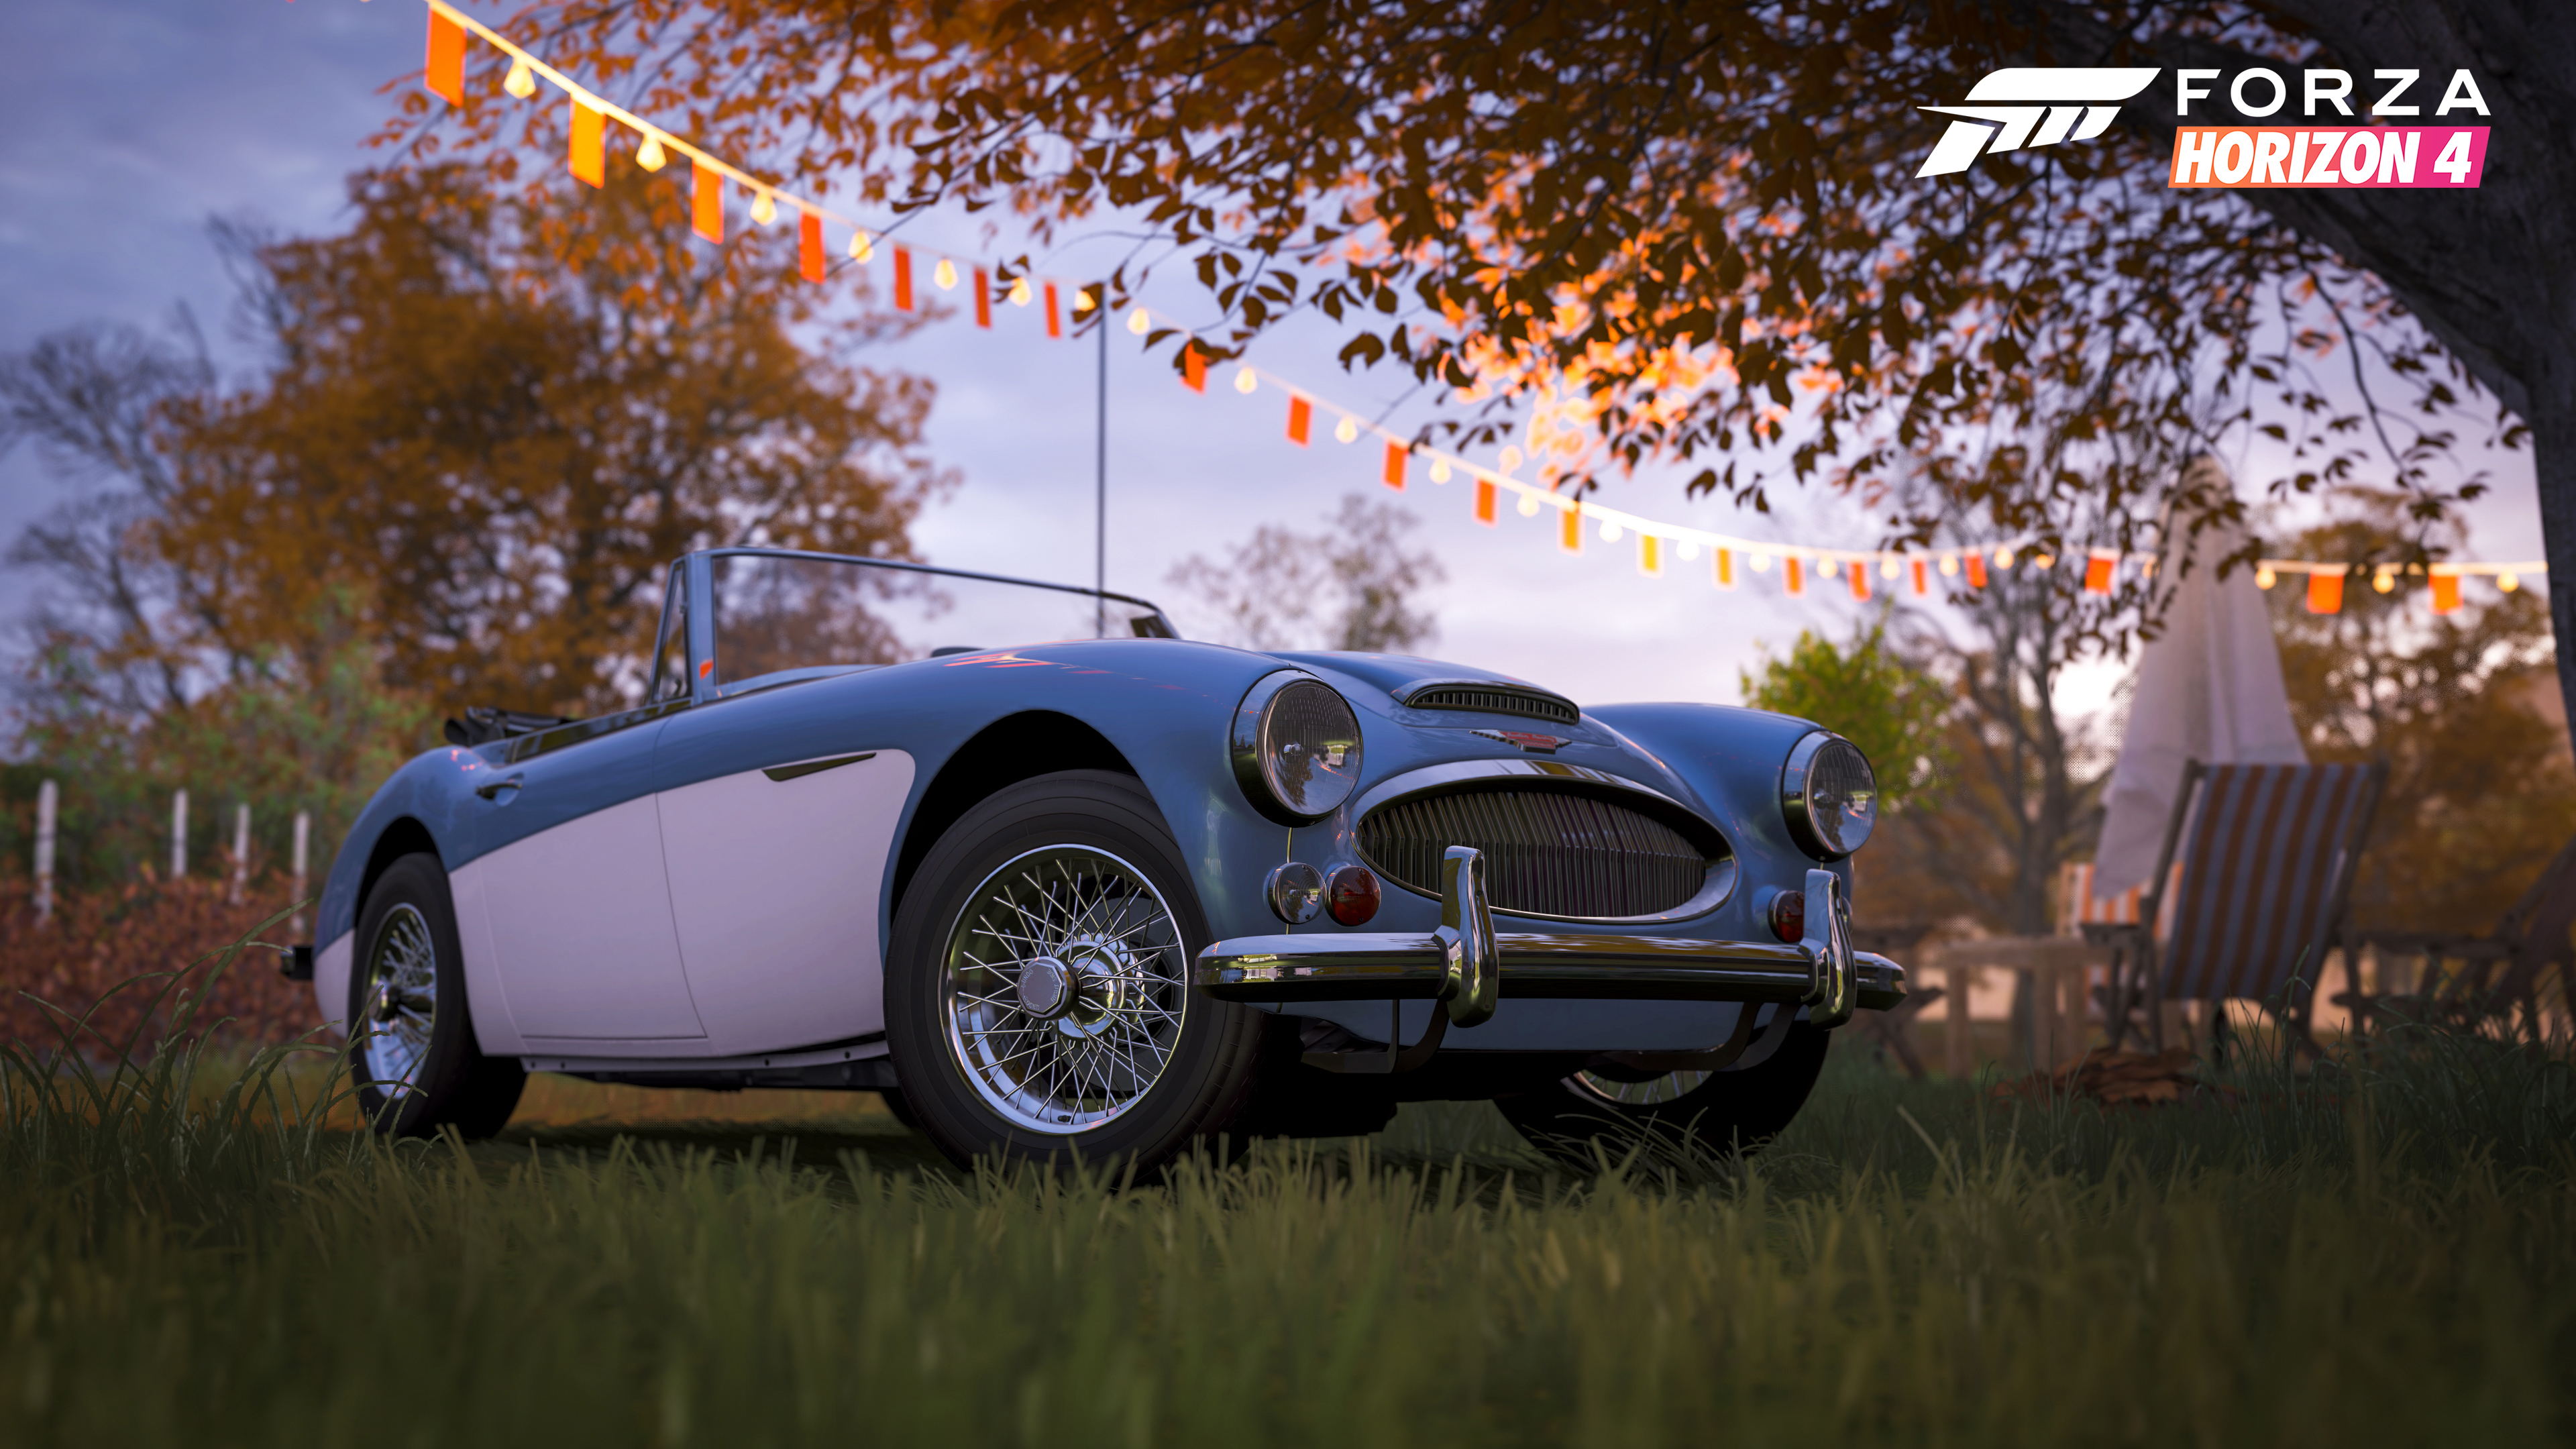 Forza Horizon 4's service check update available now - Team VVV